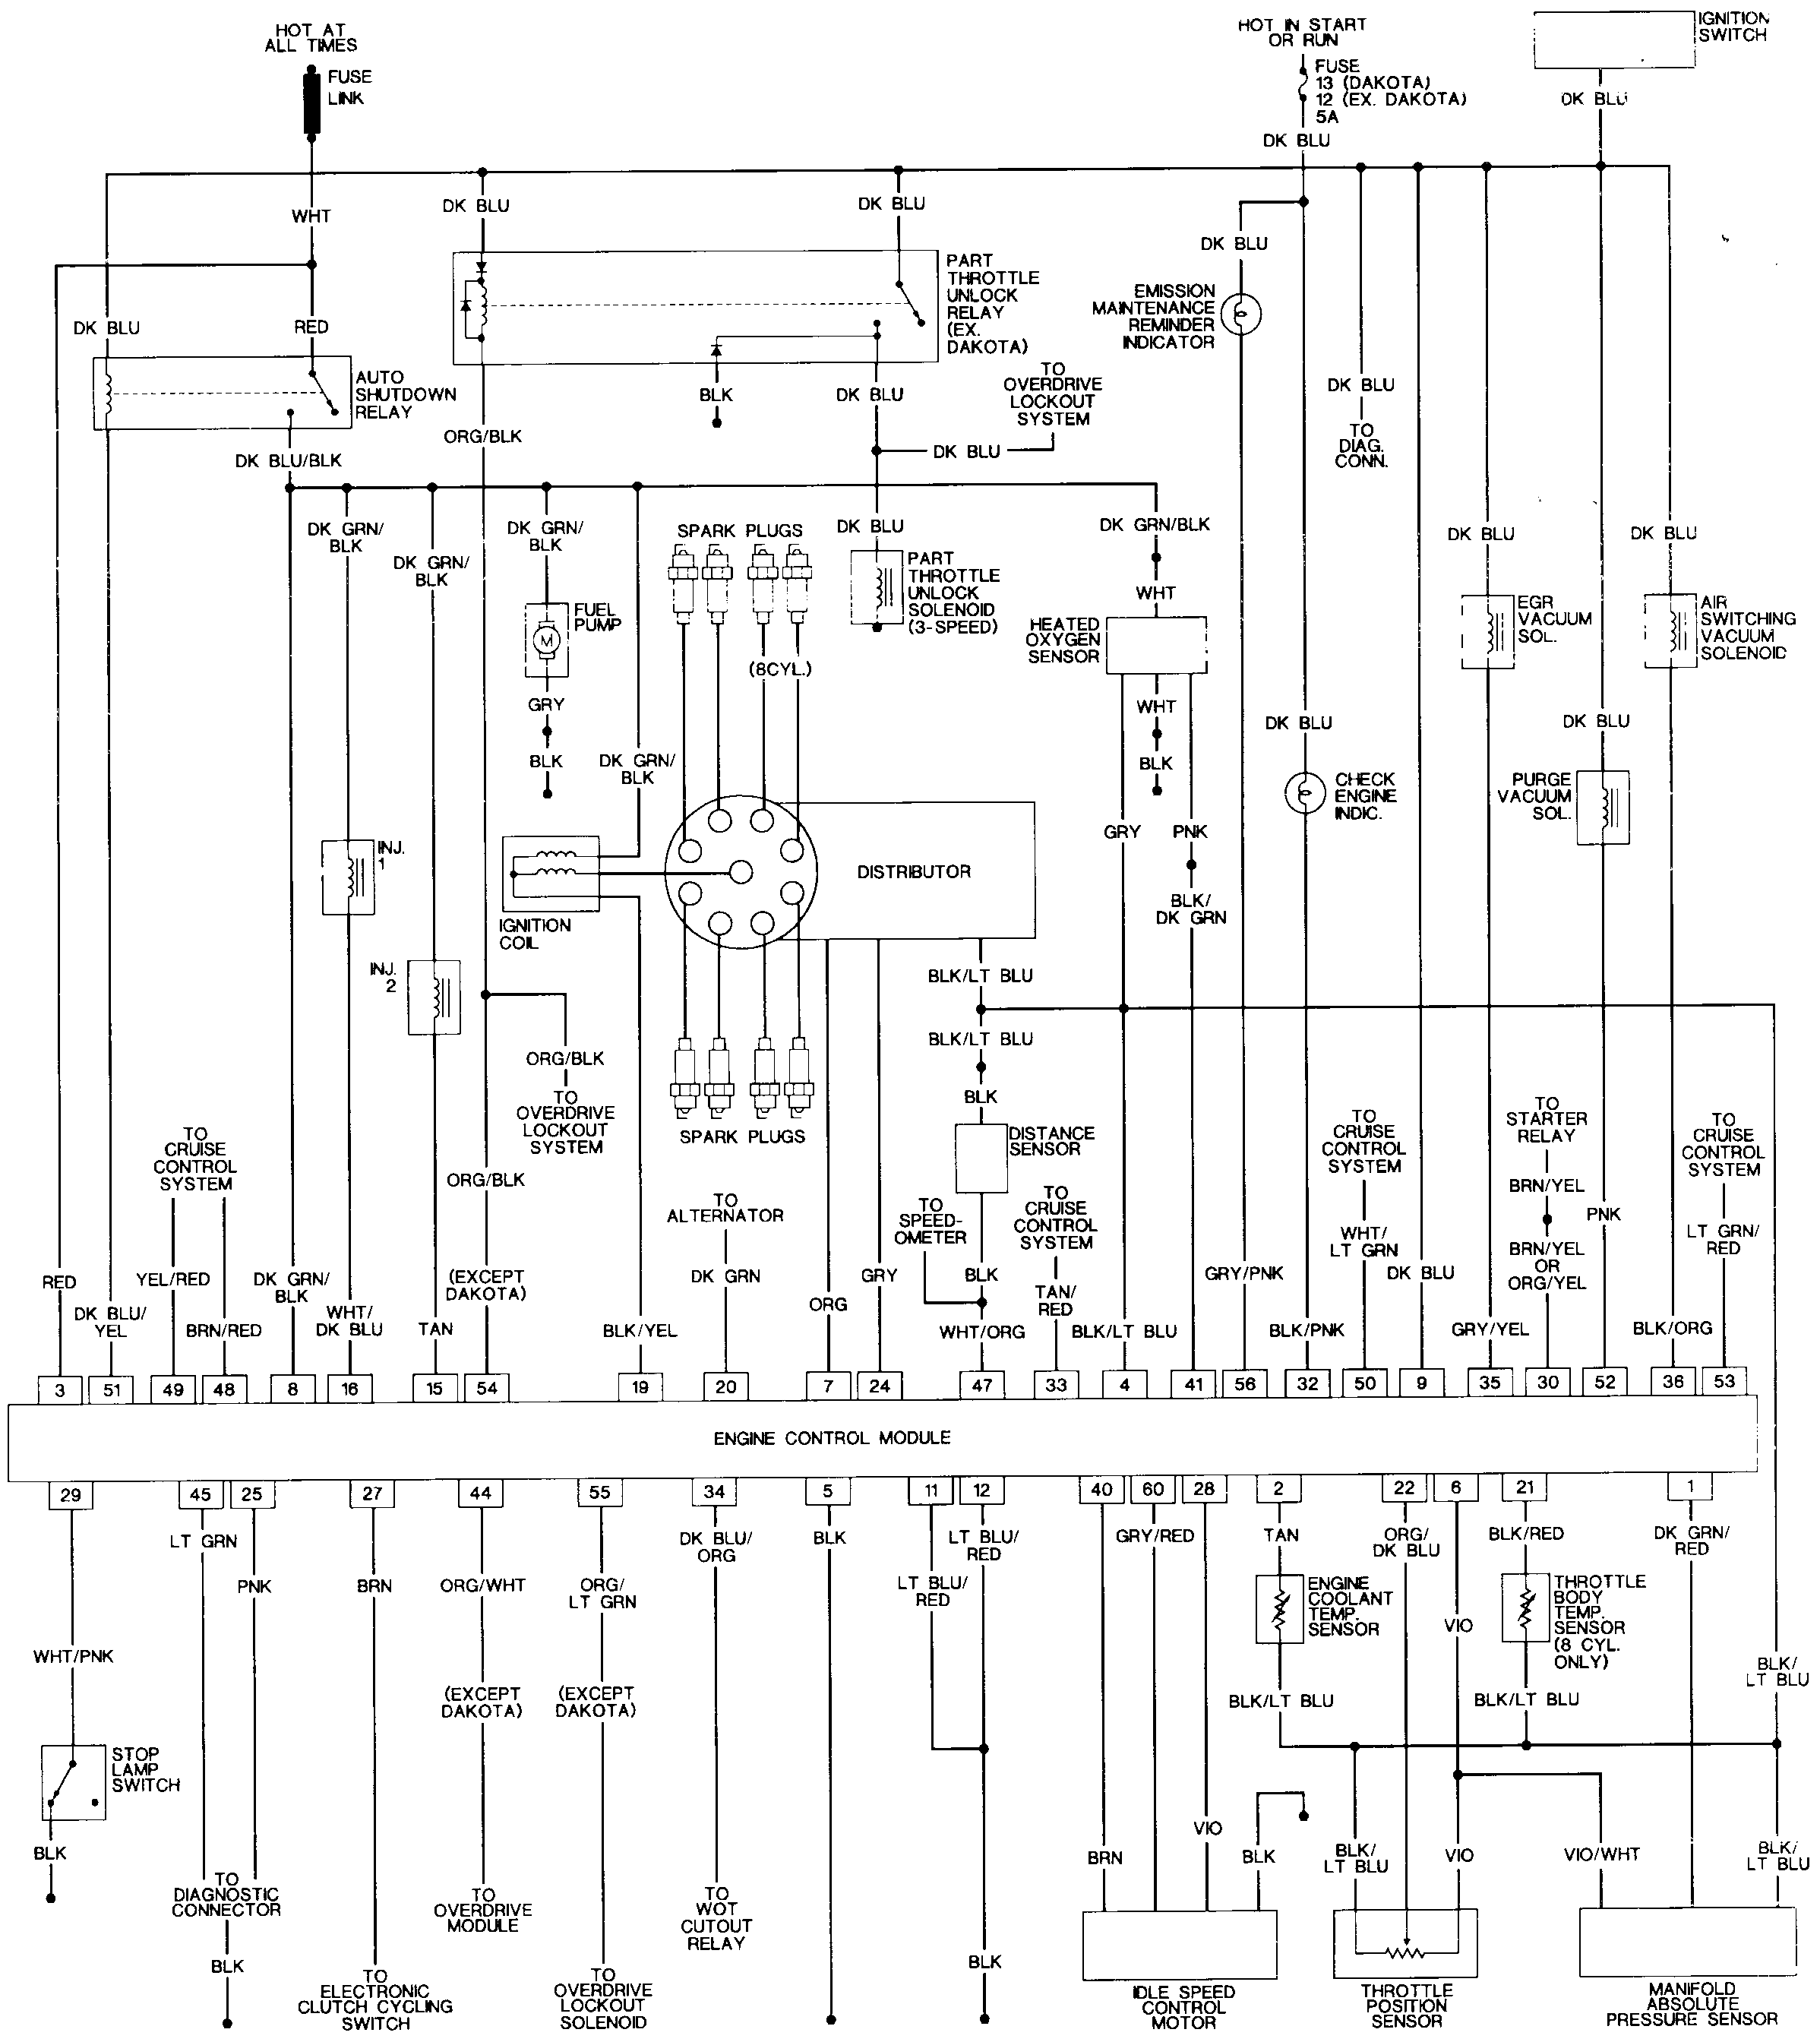 DIAGRAM] 89 Dodge Dakota Coil Wiring Diagram FULL Version HD Quality Wiring  Diagram - KACO-DIAGRAMBASE.ROMANIATV.ITDiagram Database - romaniatv.it